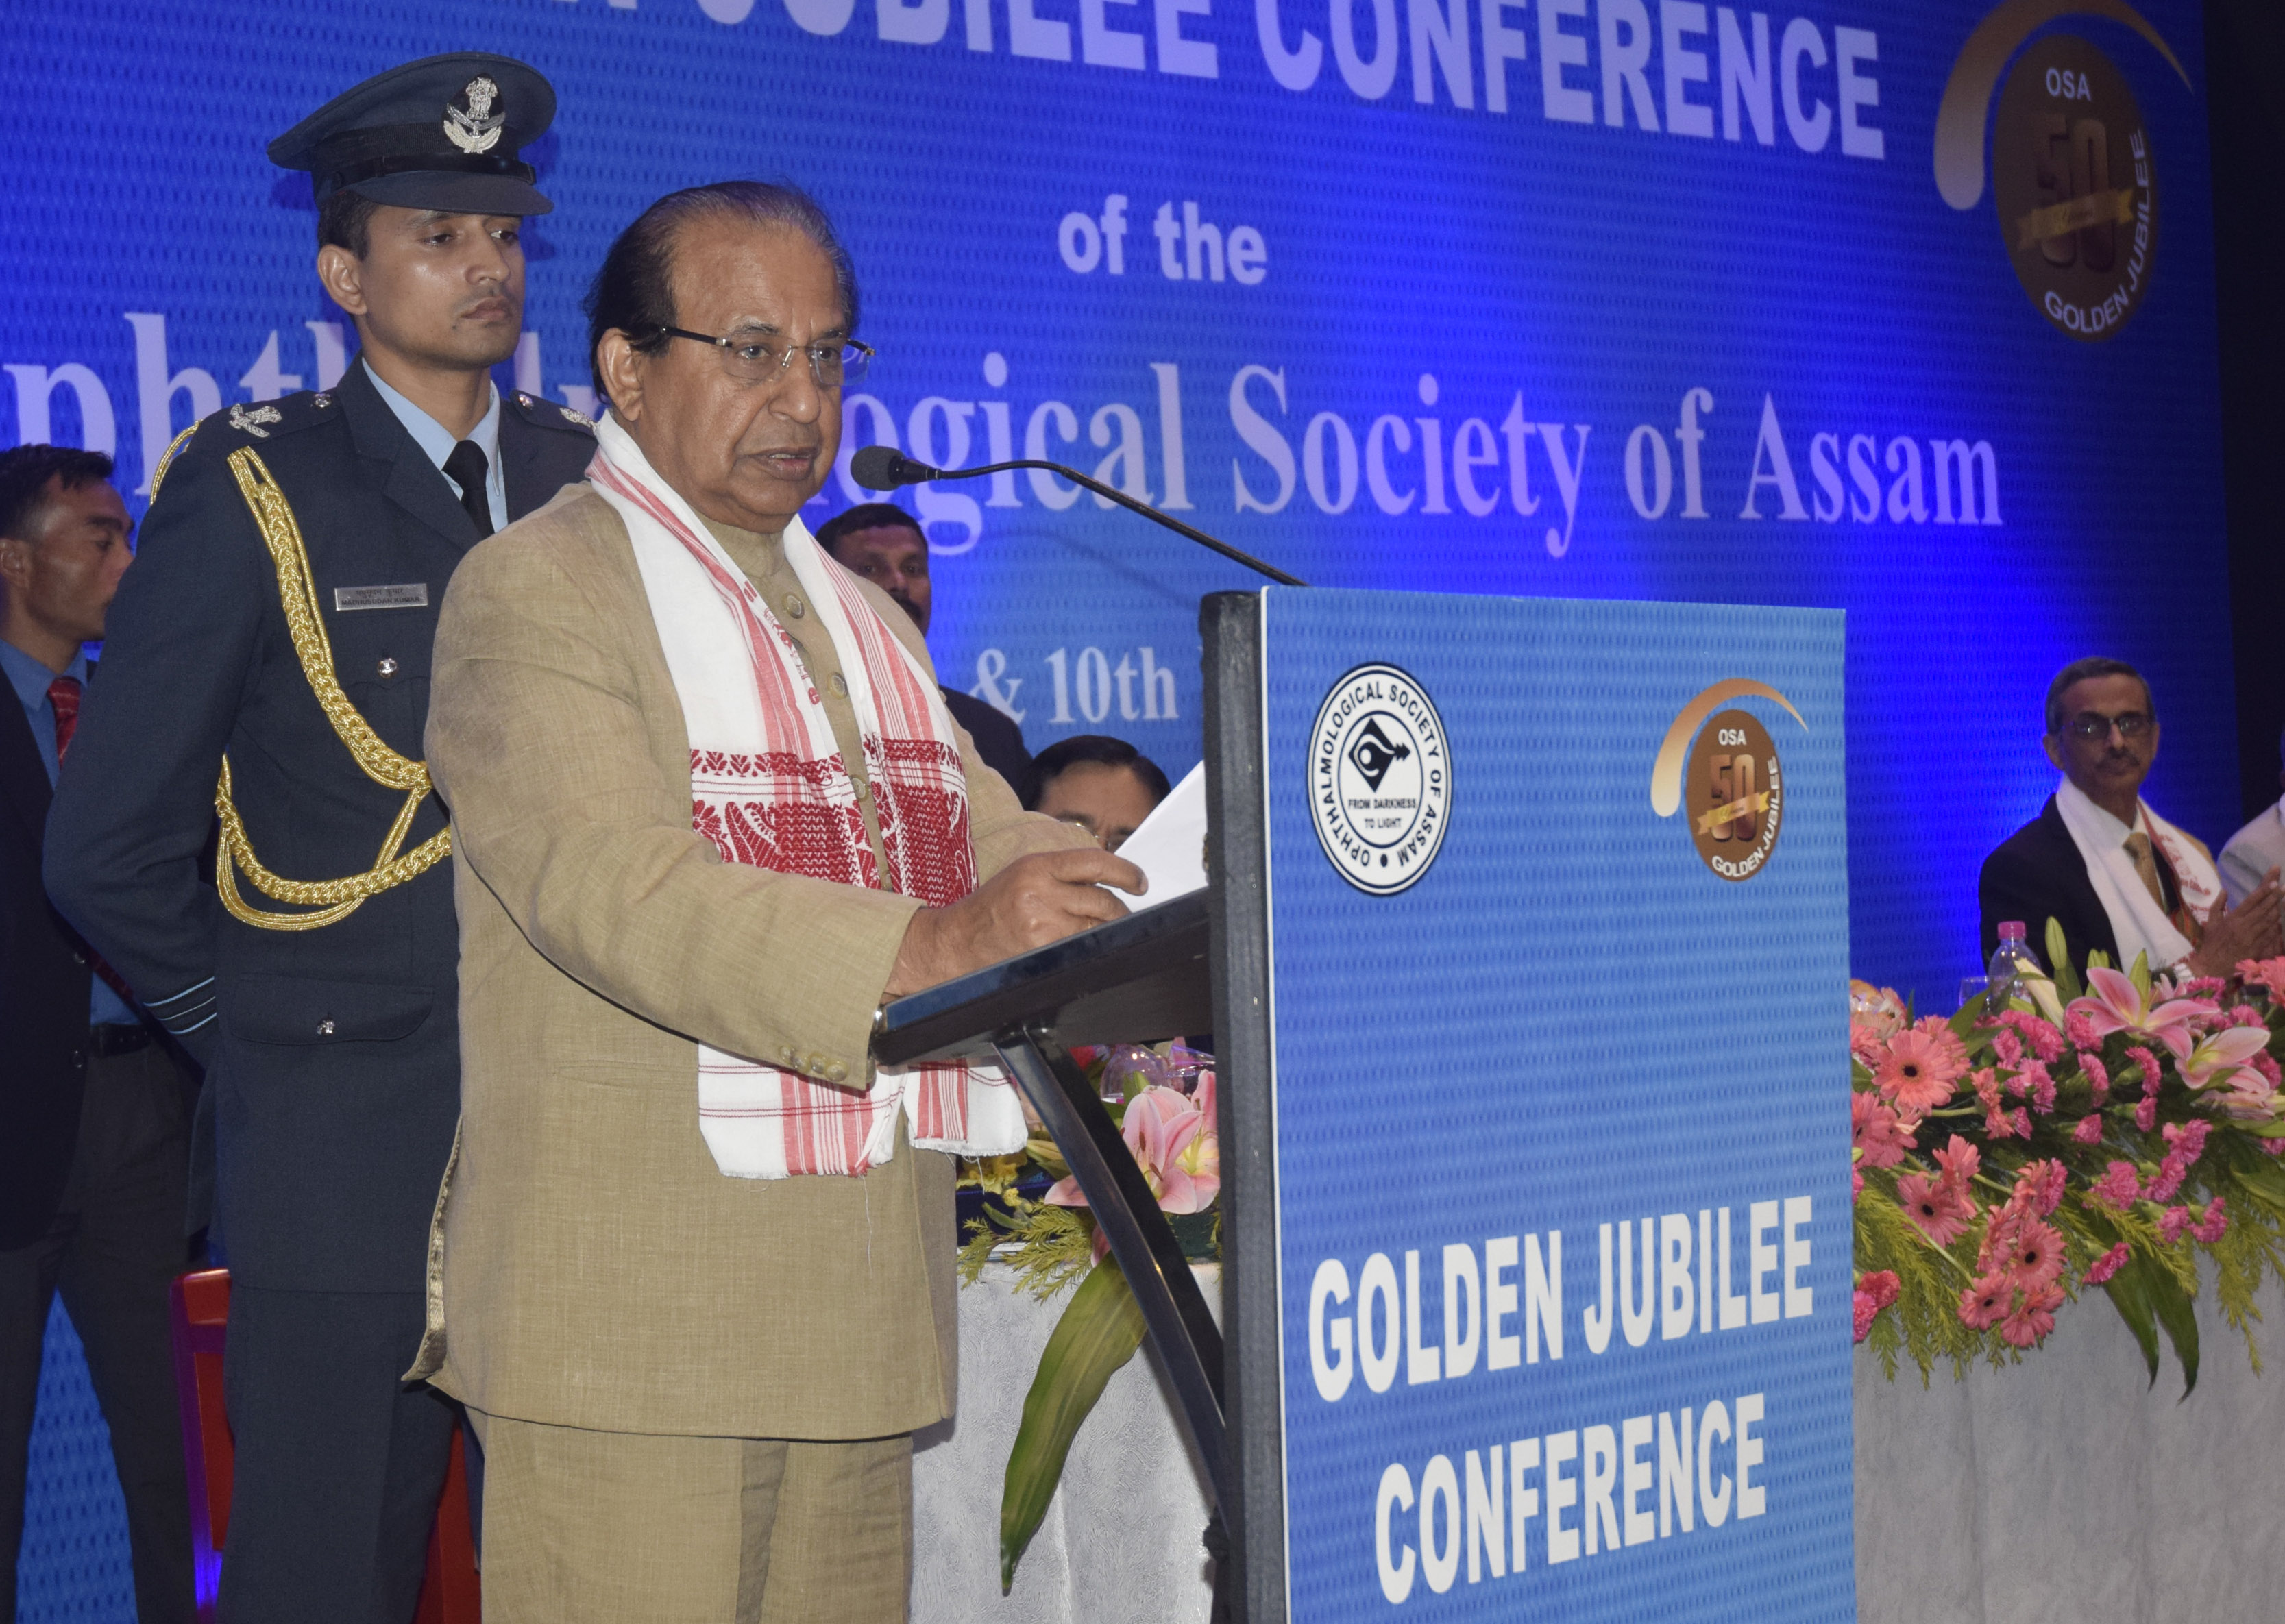 Governor Prof Jagdish Mukhi speaking at the event in Guwahati.